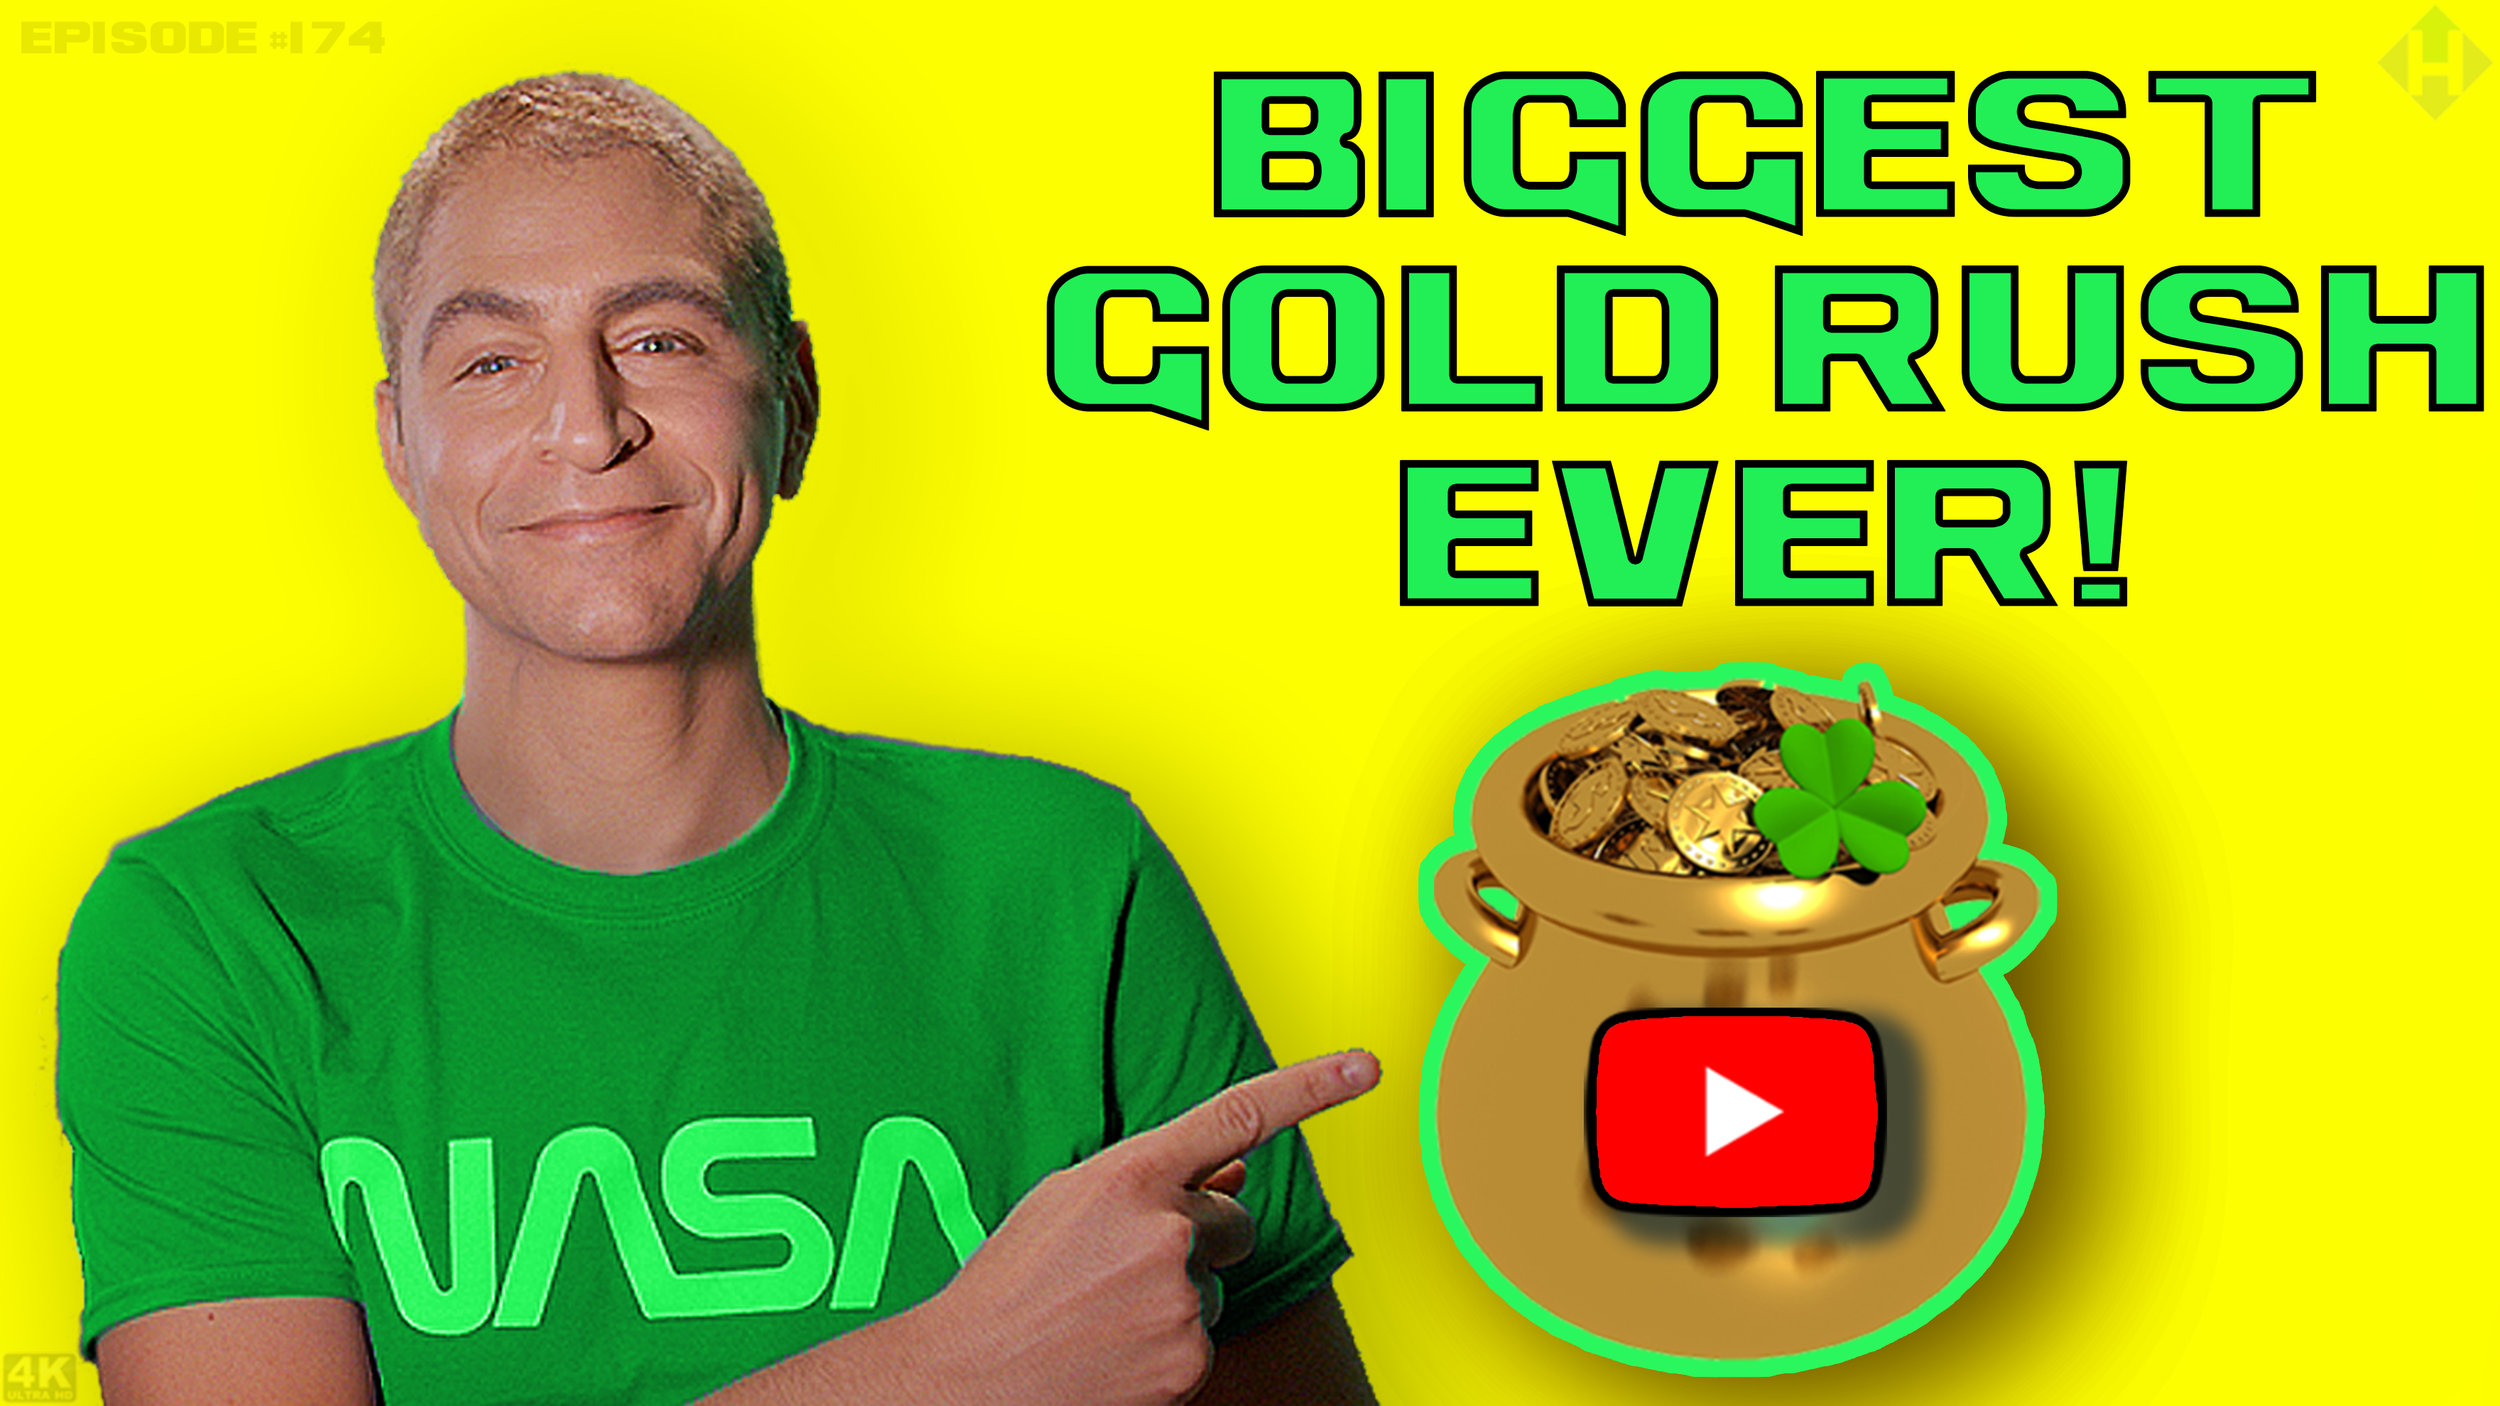 DAY_174_1_20_19_YOUTUBE_GOLD_RUSH.jpg